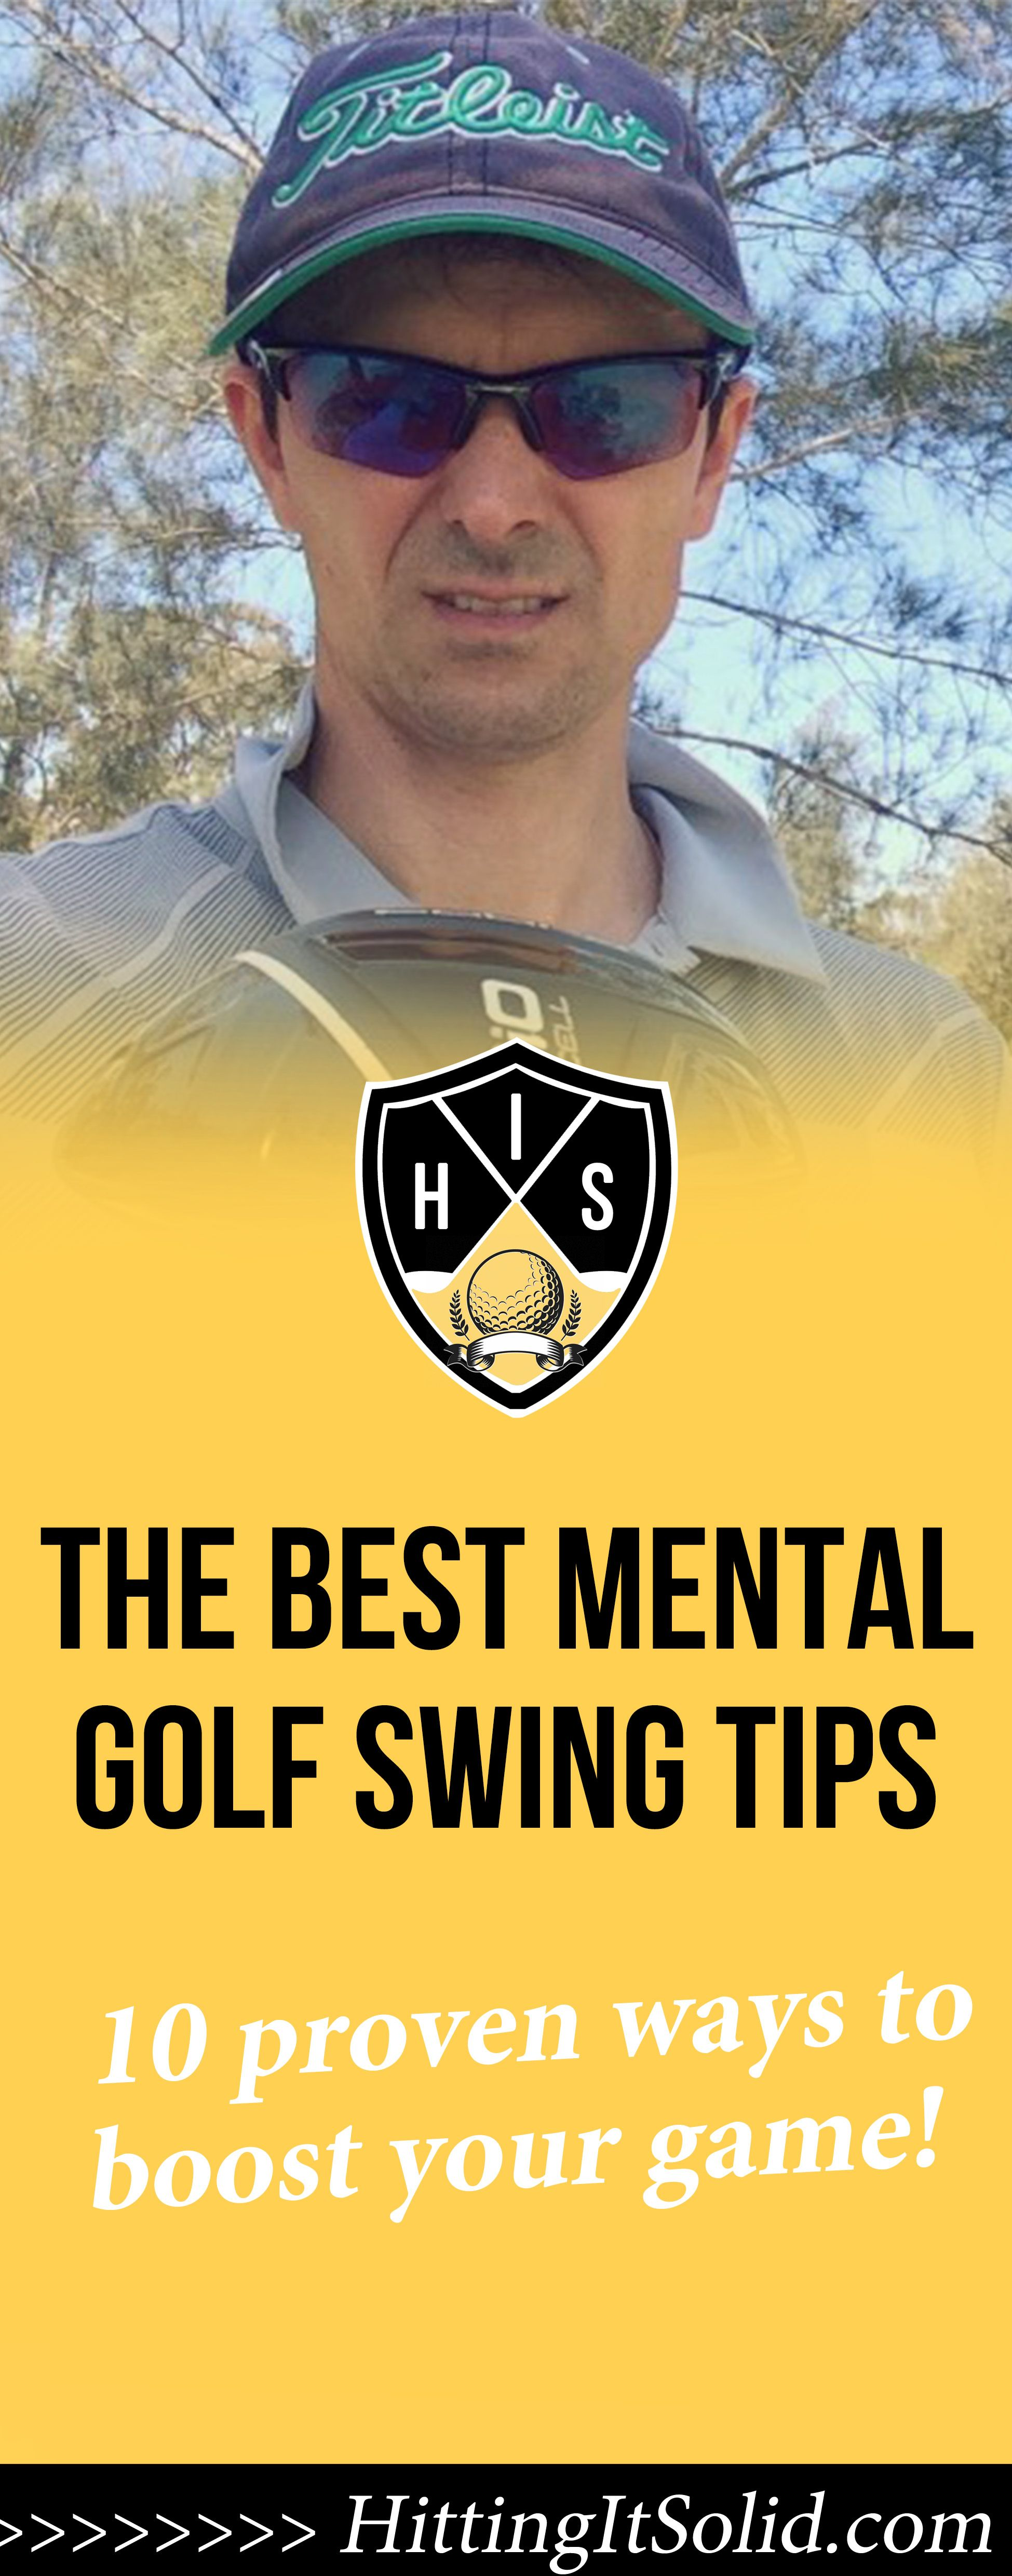 Mental Golf Tips 10 Proven Ways to Supercharge Your Golf